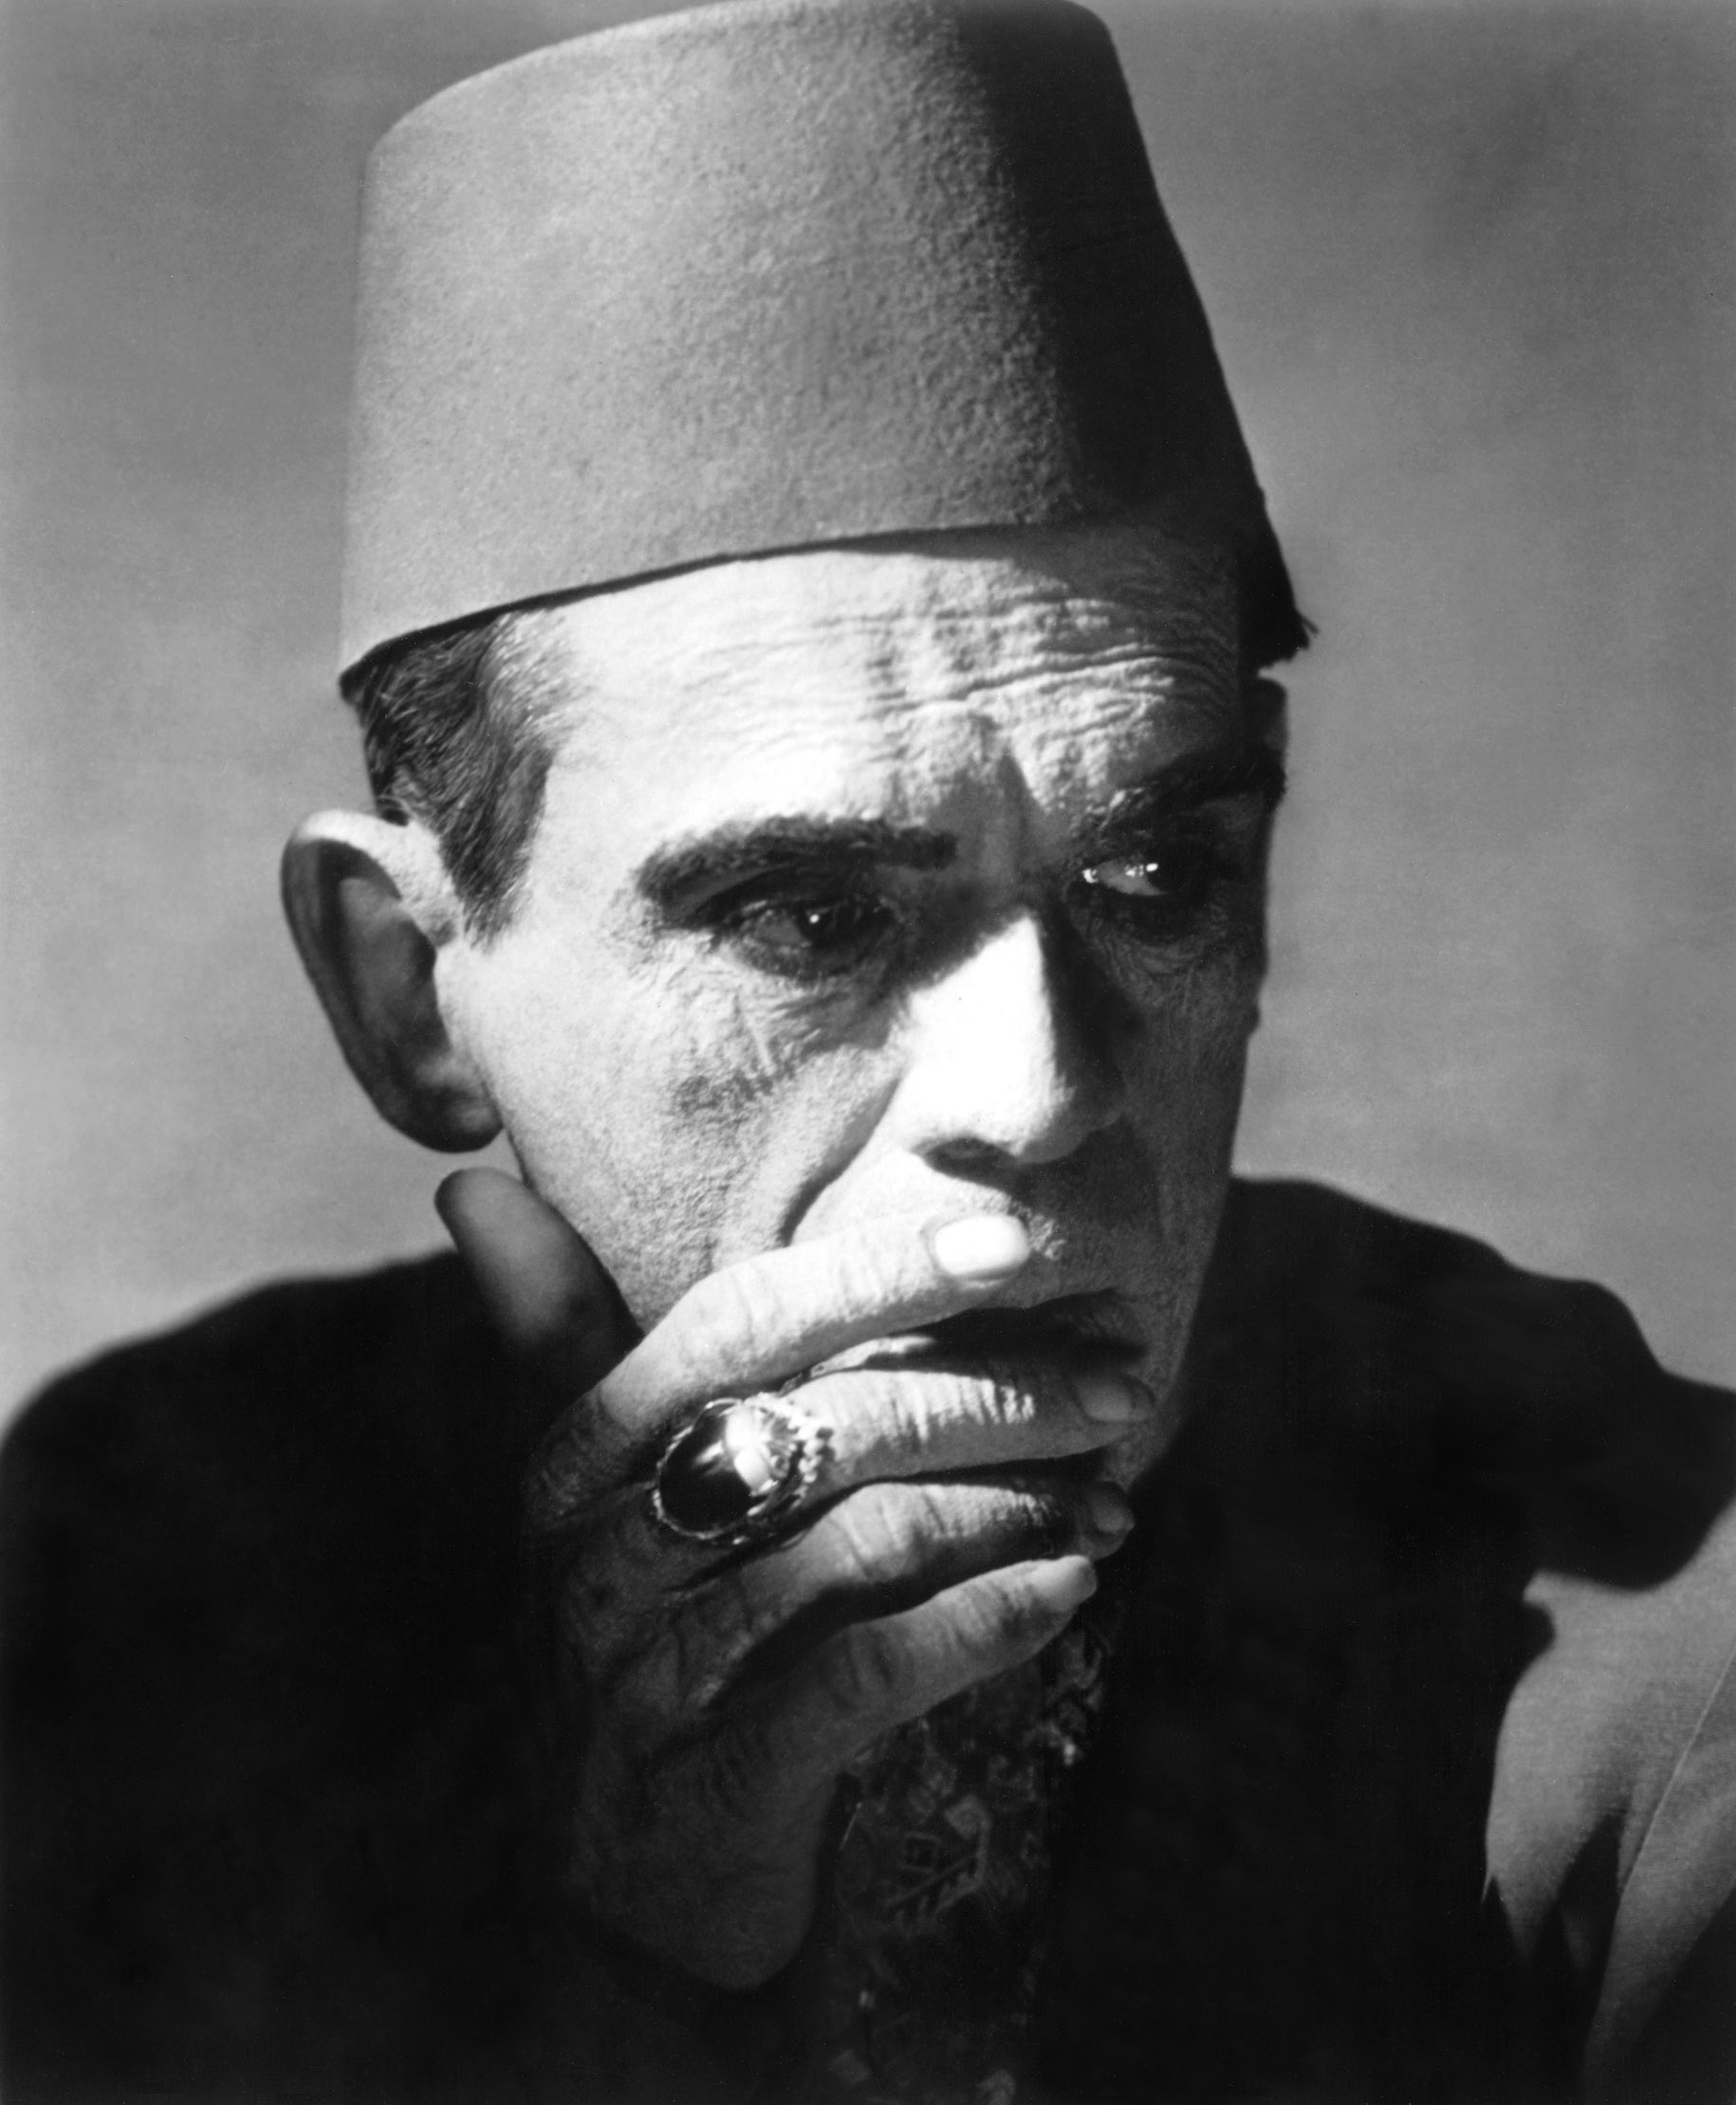 boris karloff actor